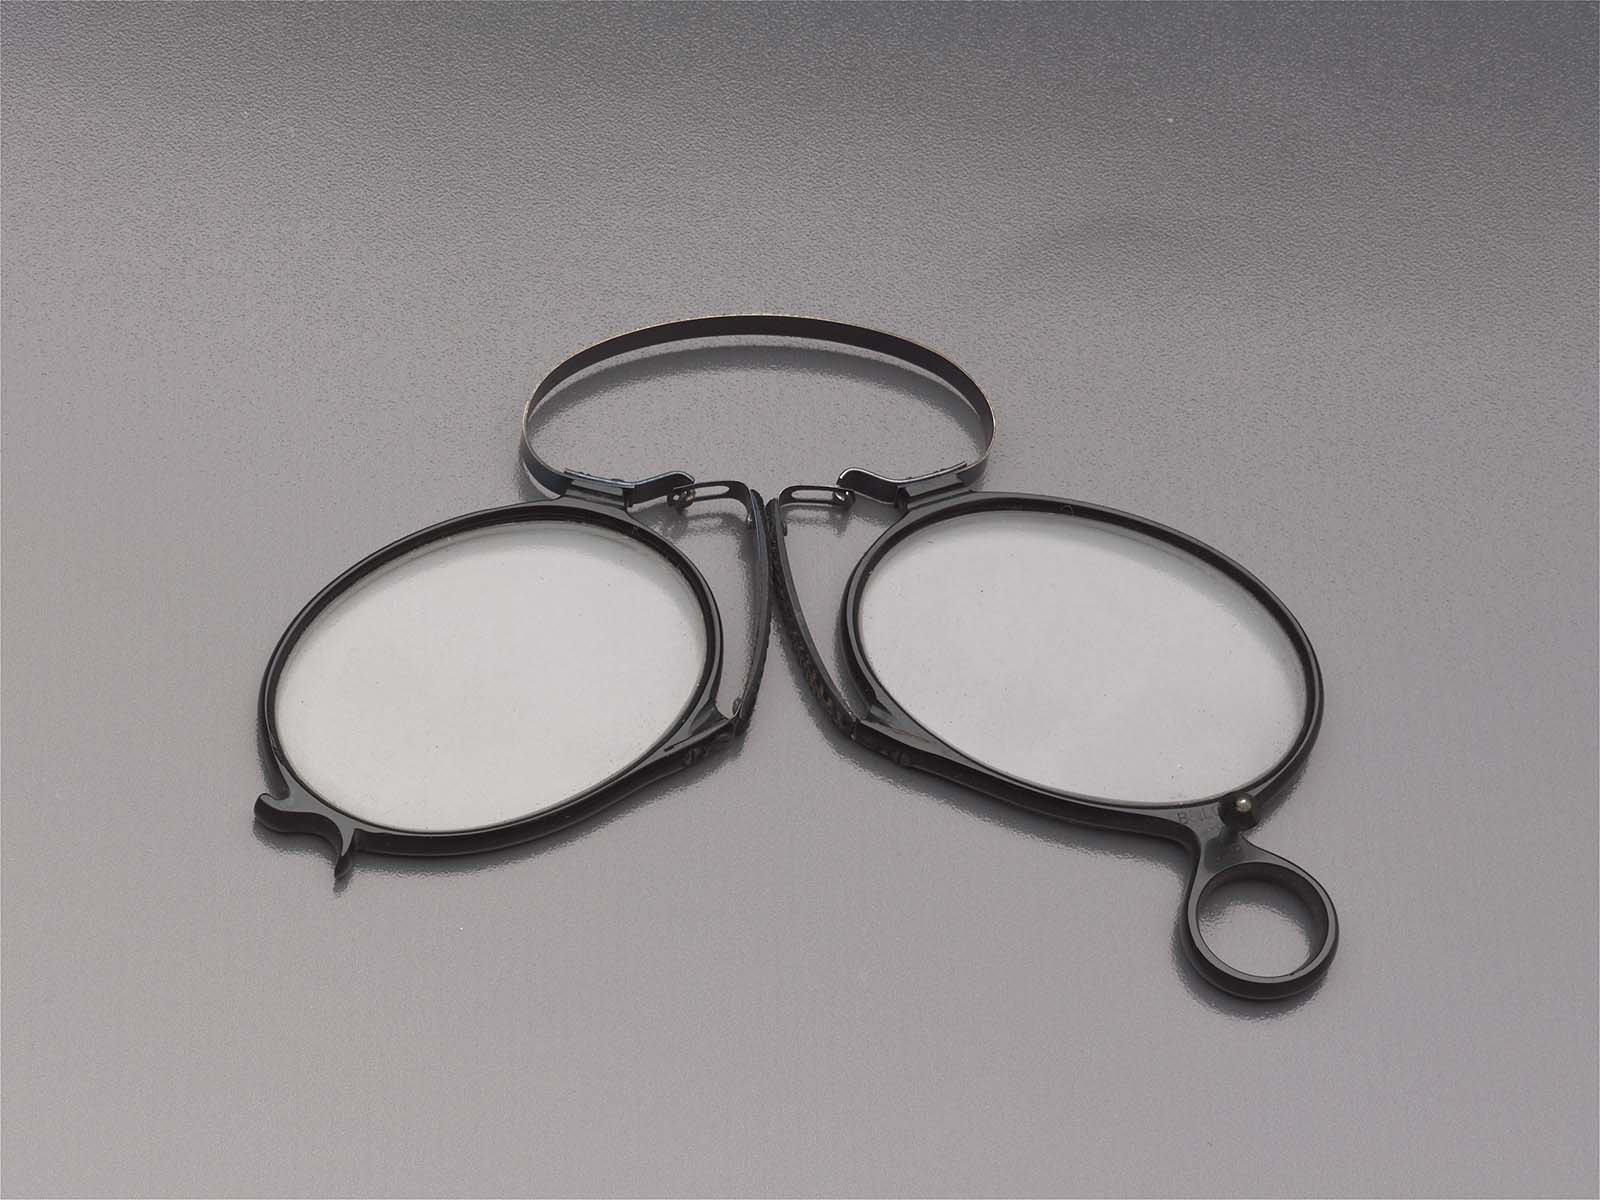 Folding Eyeglasses In Two Parts Glasses And Case Museum Of Fine Arts Boston